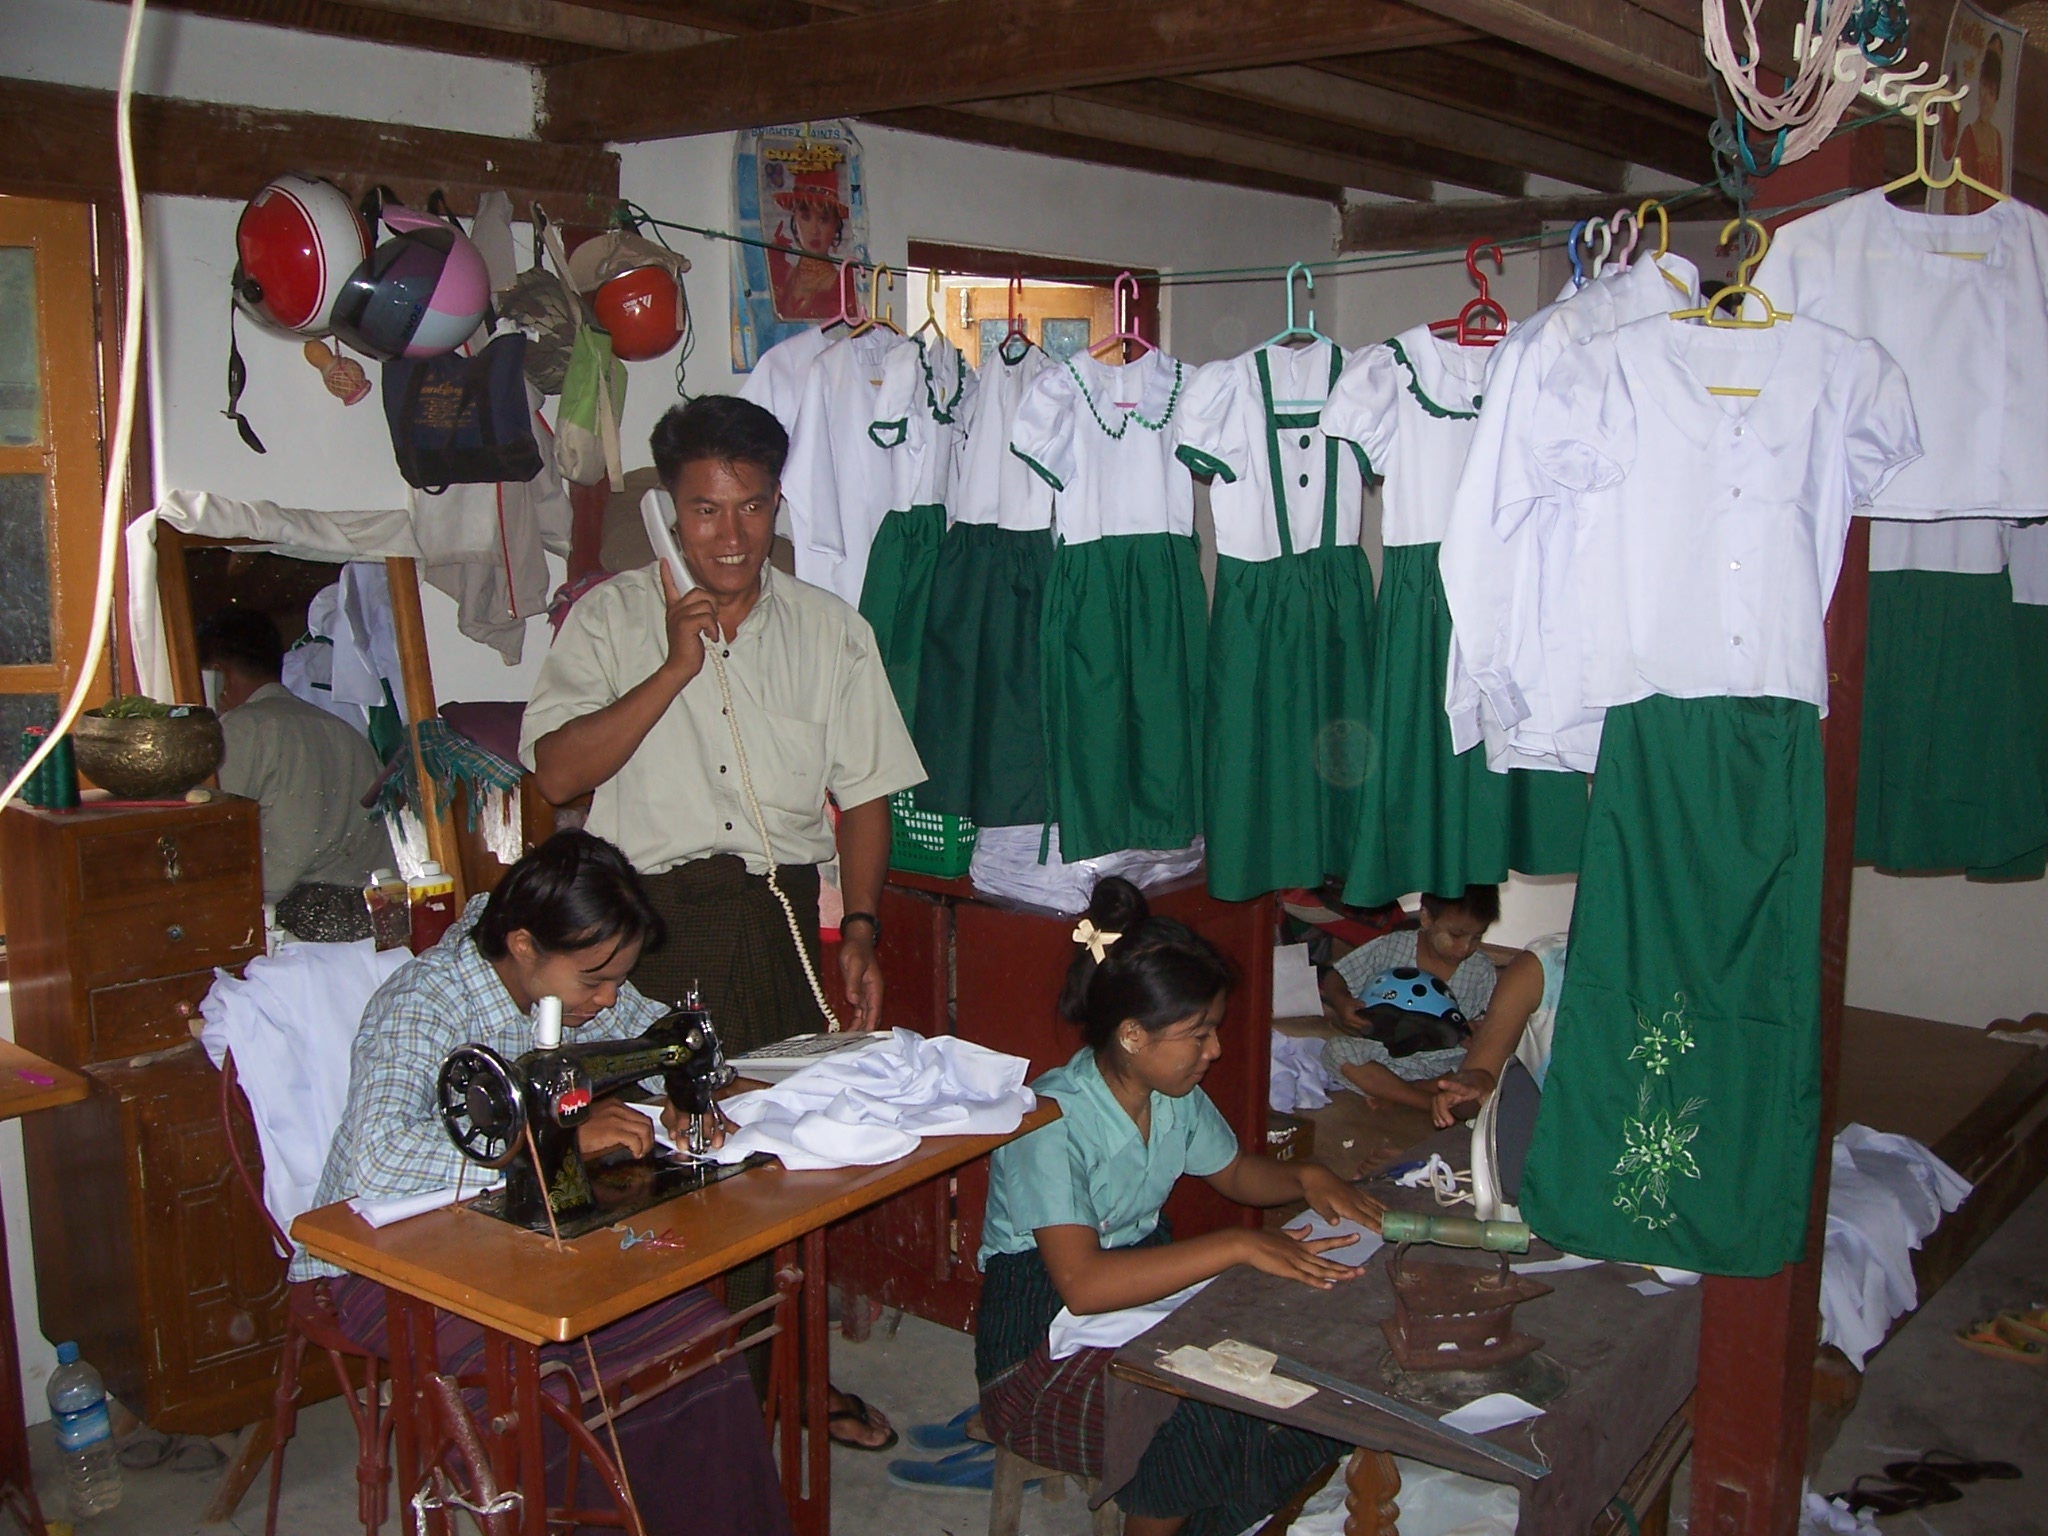 School Supplies and Uniforms